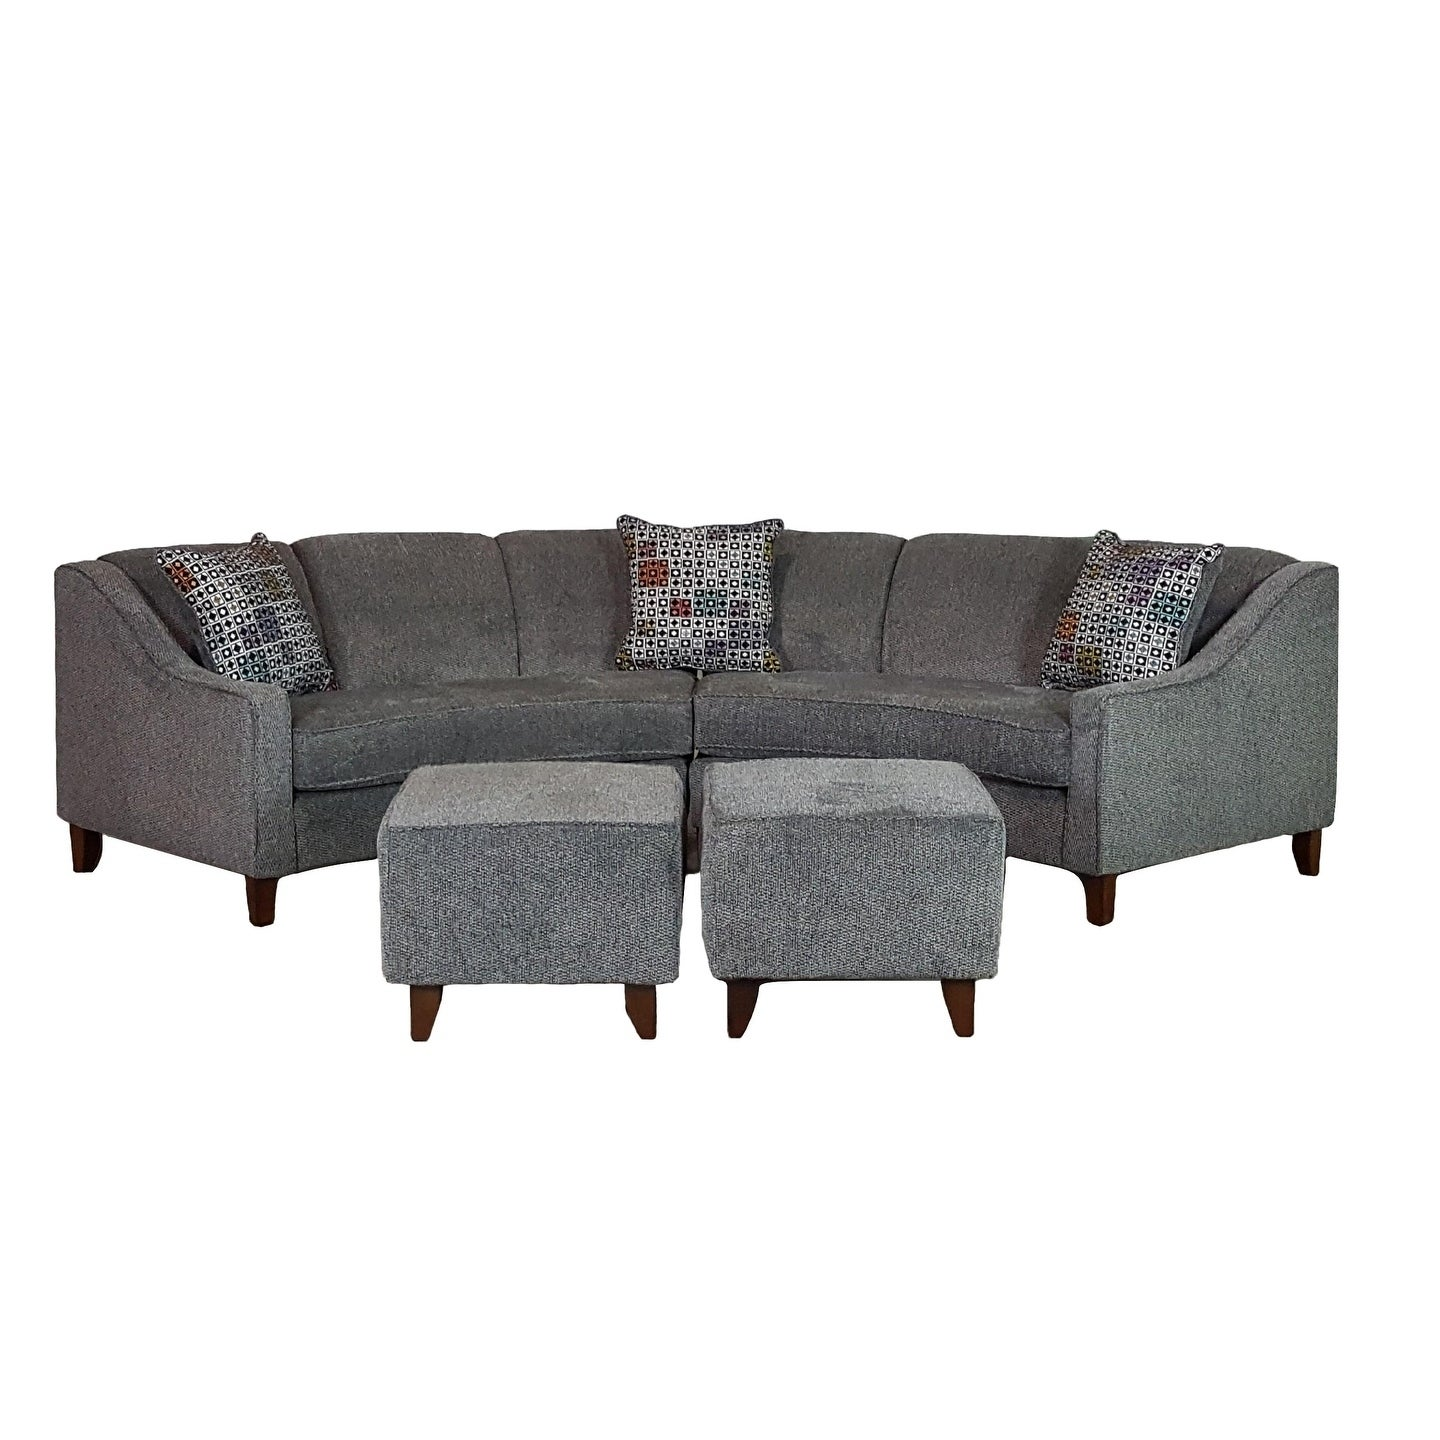 Sofa Trendz Bindel Grey Curved Sectional Sofa with Ottoma...